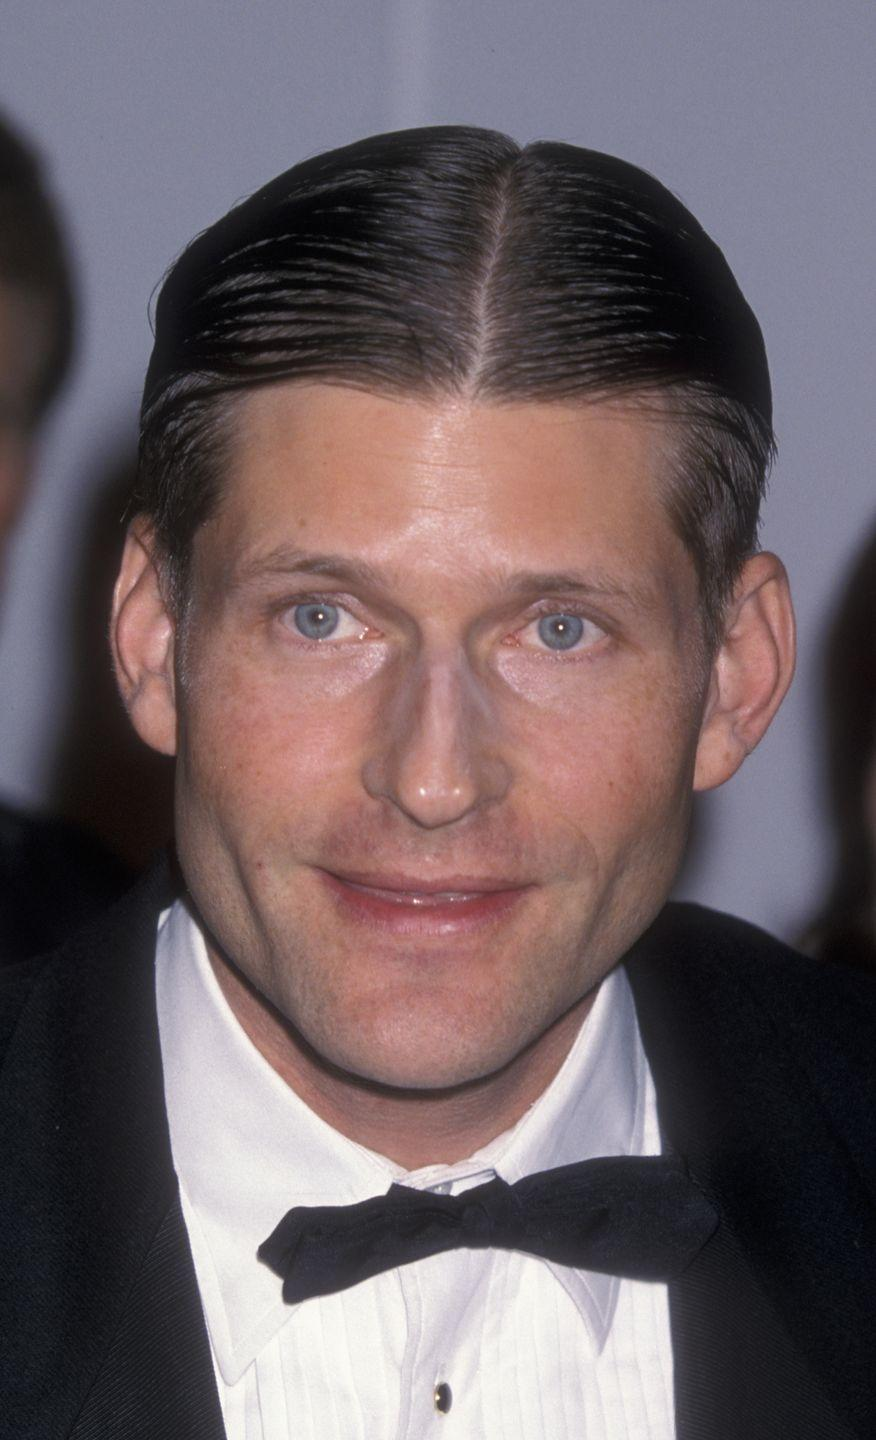 """<p>It turns out not everyone was a fan of <em>Back to the Future.</em> Crispin Glover, who played Marty McFly's father, didn't approve of the trilogy's ending. He even went as far as discussing it with the film's director, Robert Zemeckis: """"I said, 'I think if the characters have money, if our characters are rich, it's a bad message. That reward should not be in there,'"""" he told <a href=""""https://film.avclub.com/crispin-glover-1798229277"""" rel=""""nofollow noopener"""" target=""""_blank"""" data-ylk=""""slk:AV Club"""" class=""""link rapid-noclick-resp"""">AV Club</a>.<br></p>"""